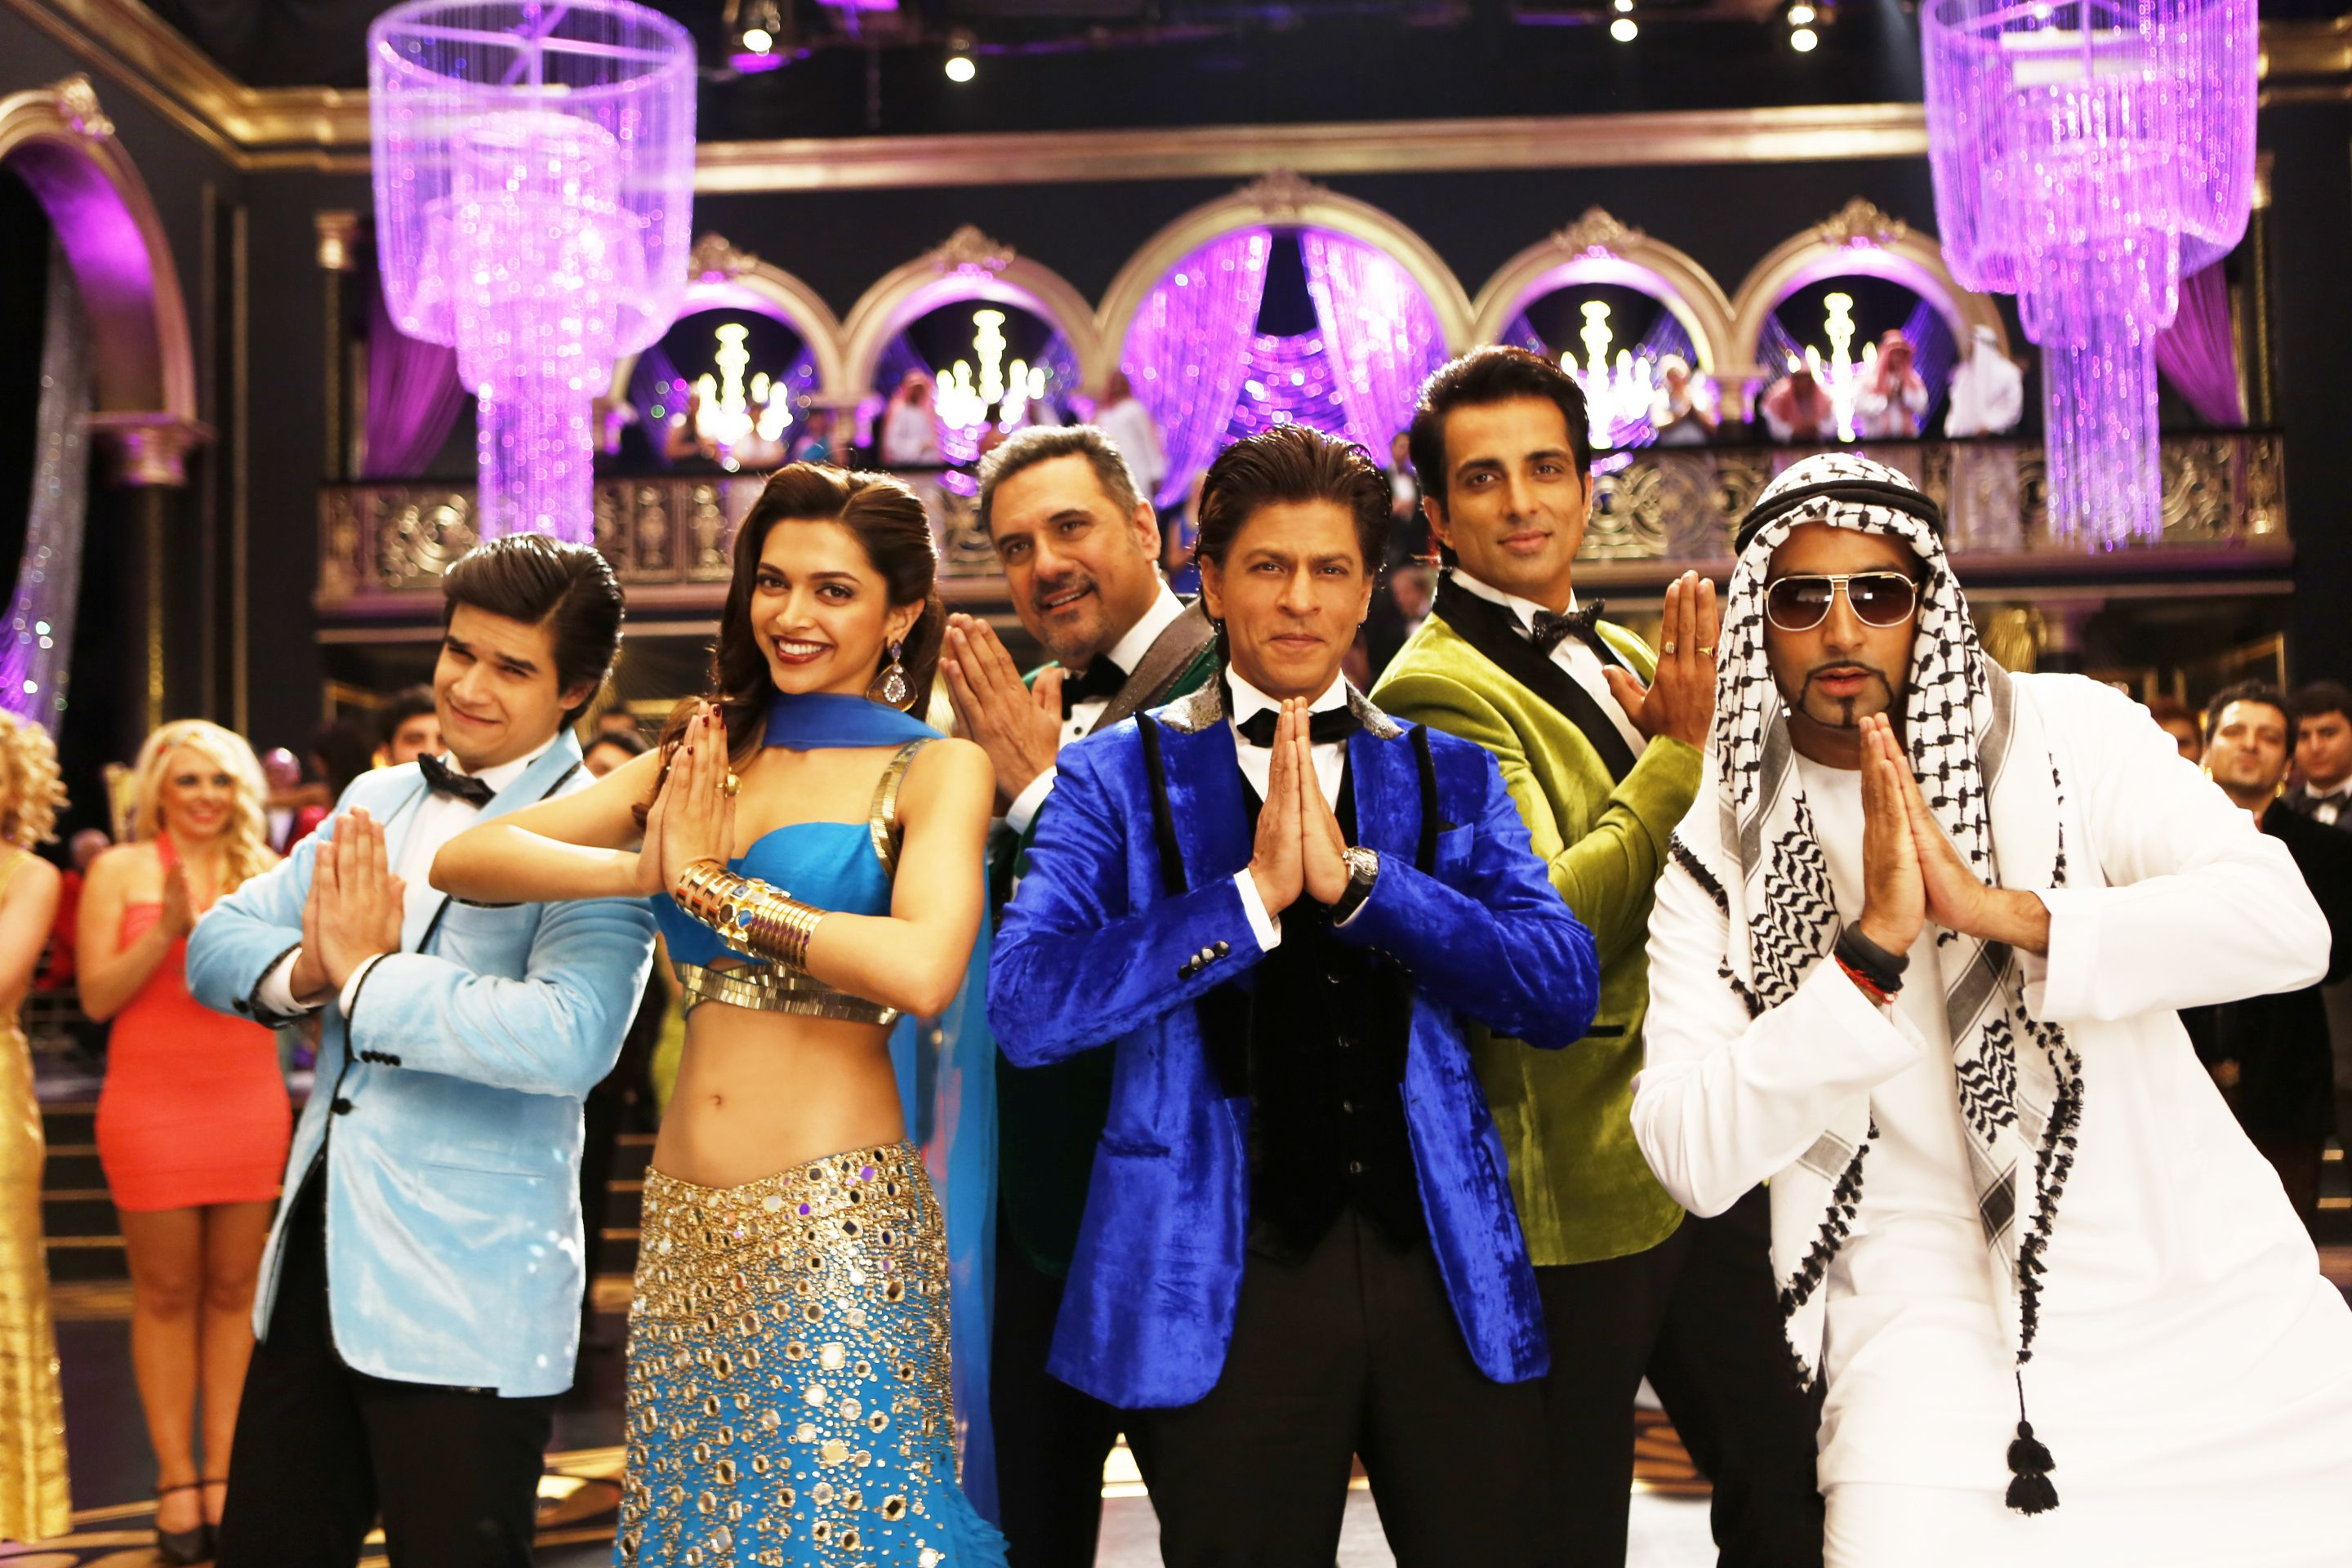 They Look All So Innocent Are They Really Happynewyear Http Cinecentre Co Za Movie 3623 Happy New Year Movie Happy New Year Song New Years Song